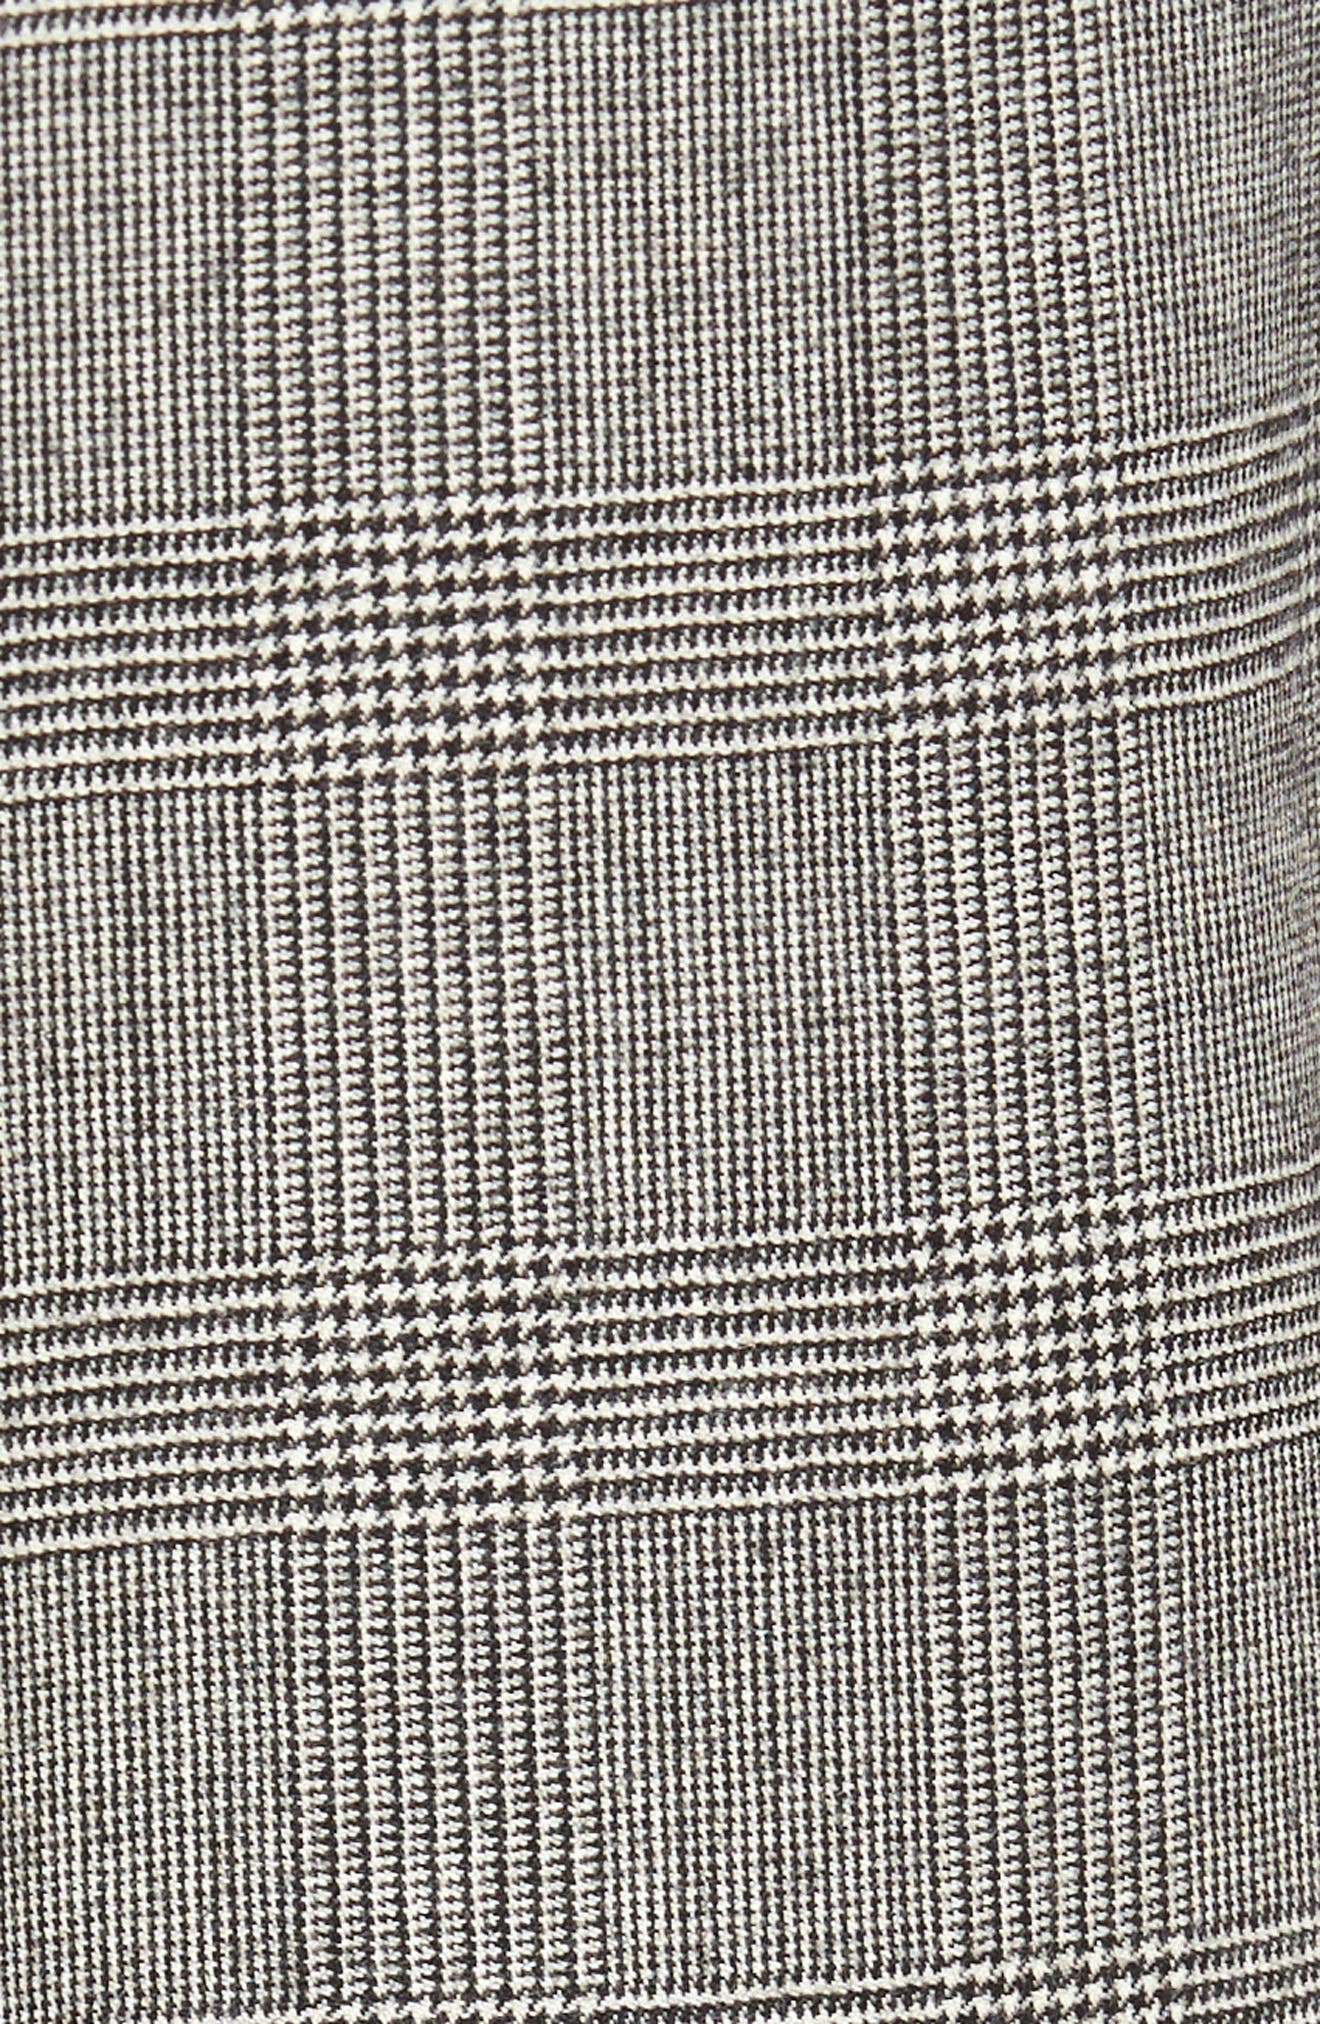 Flat Front Stretch Plaid Wool Trousers,                             Alternate thumbnail 2, color,                             BLACK/ WHITE